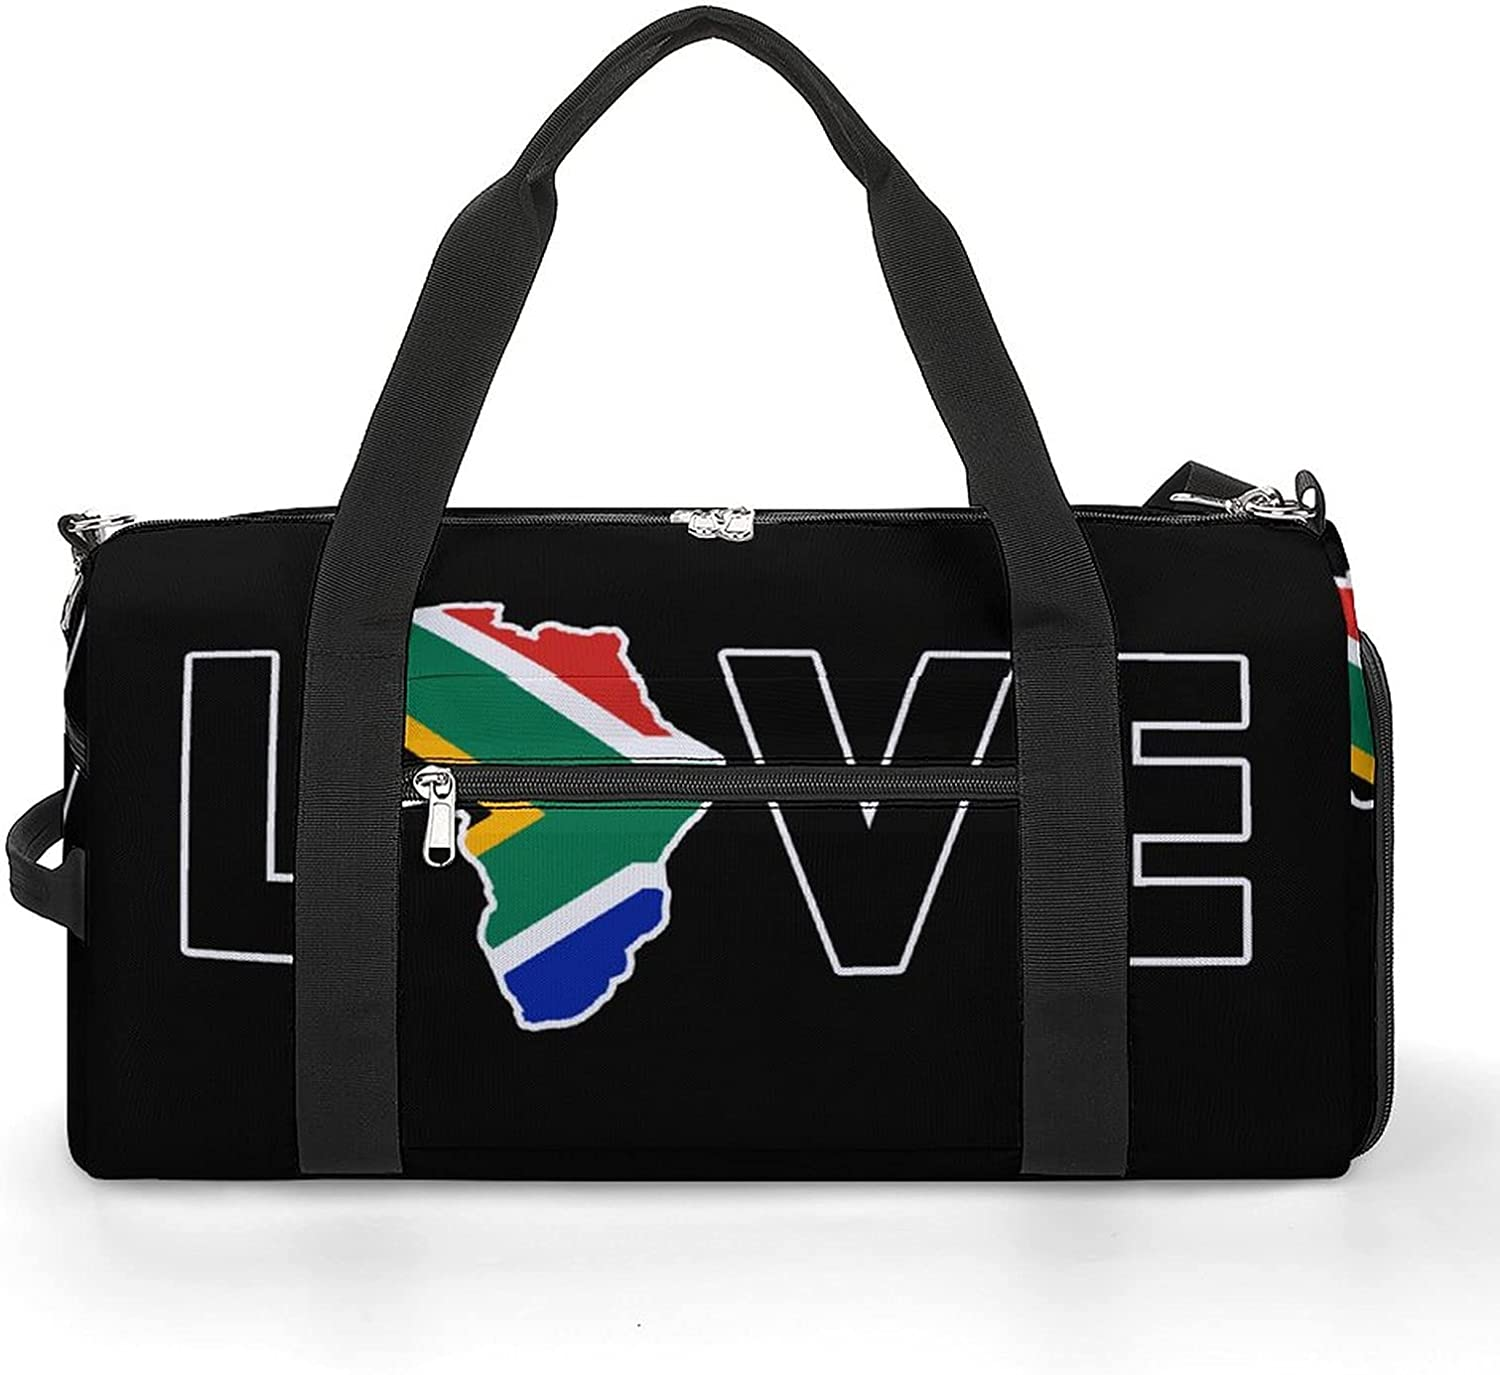 Love South New Shipping Free Africa 40% OFF Cheap Sale Sports Gym With Lightwei Compartment Shoes Bag